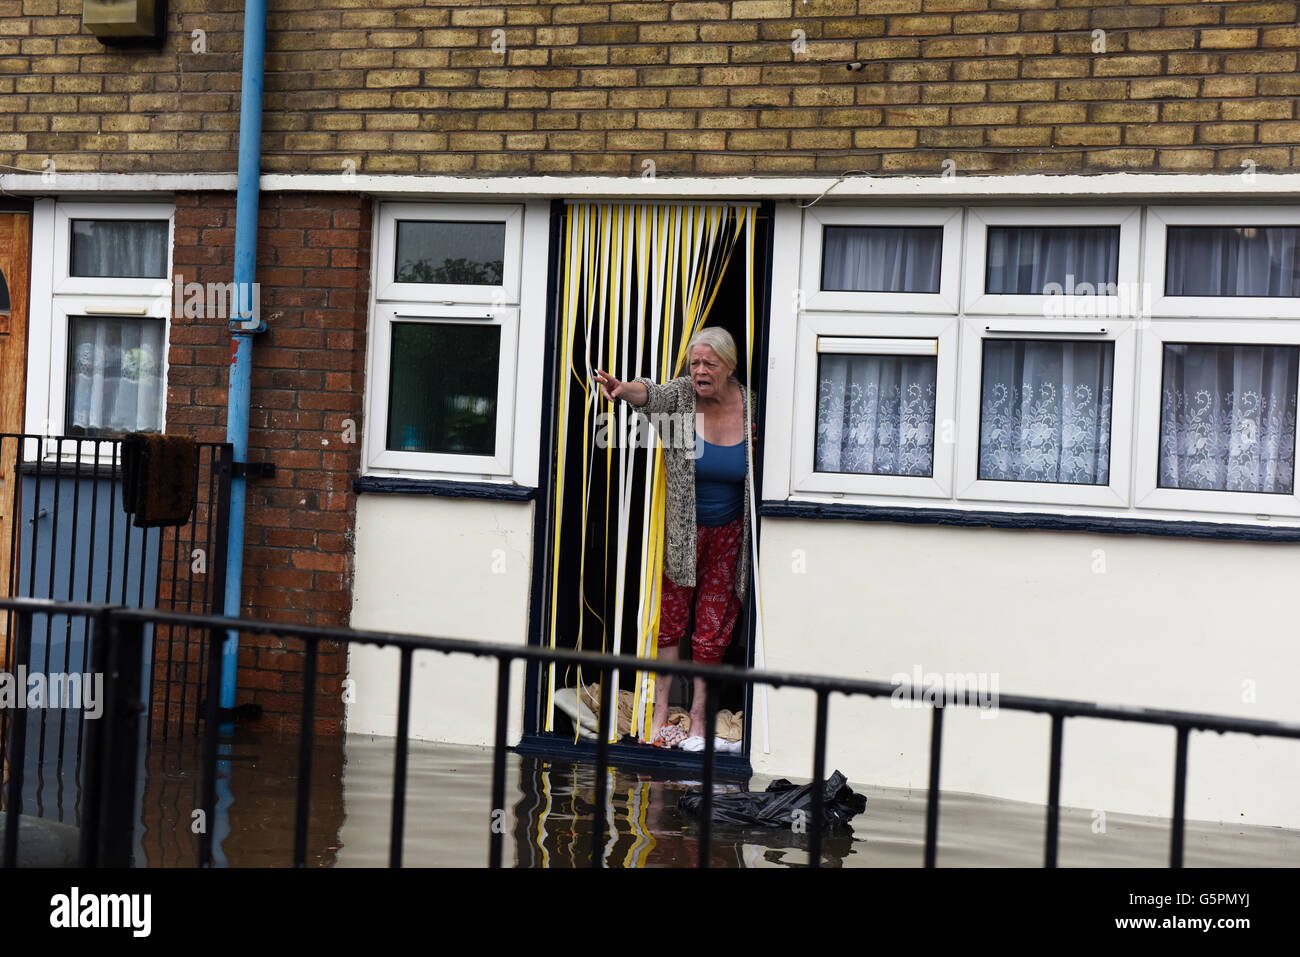 London, UK. 23rd June 2016. Heavy rain causes flooding in East London, Canning Town. Stressed woman seen standing - Stock Image